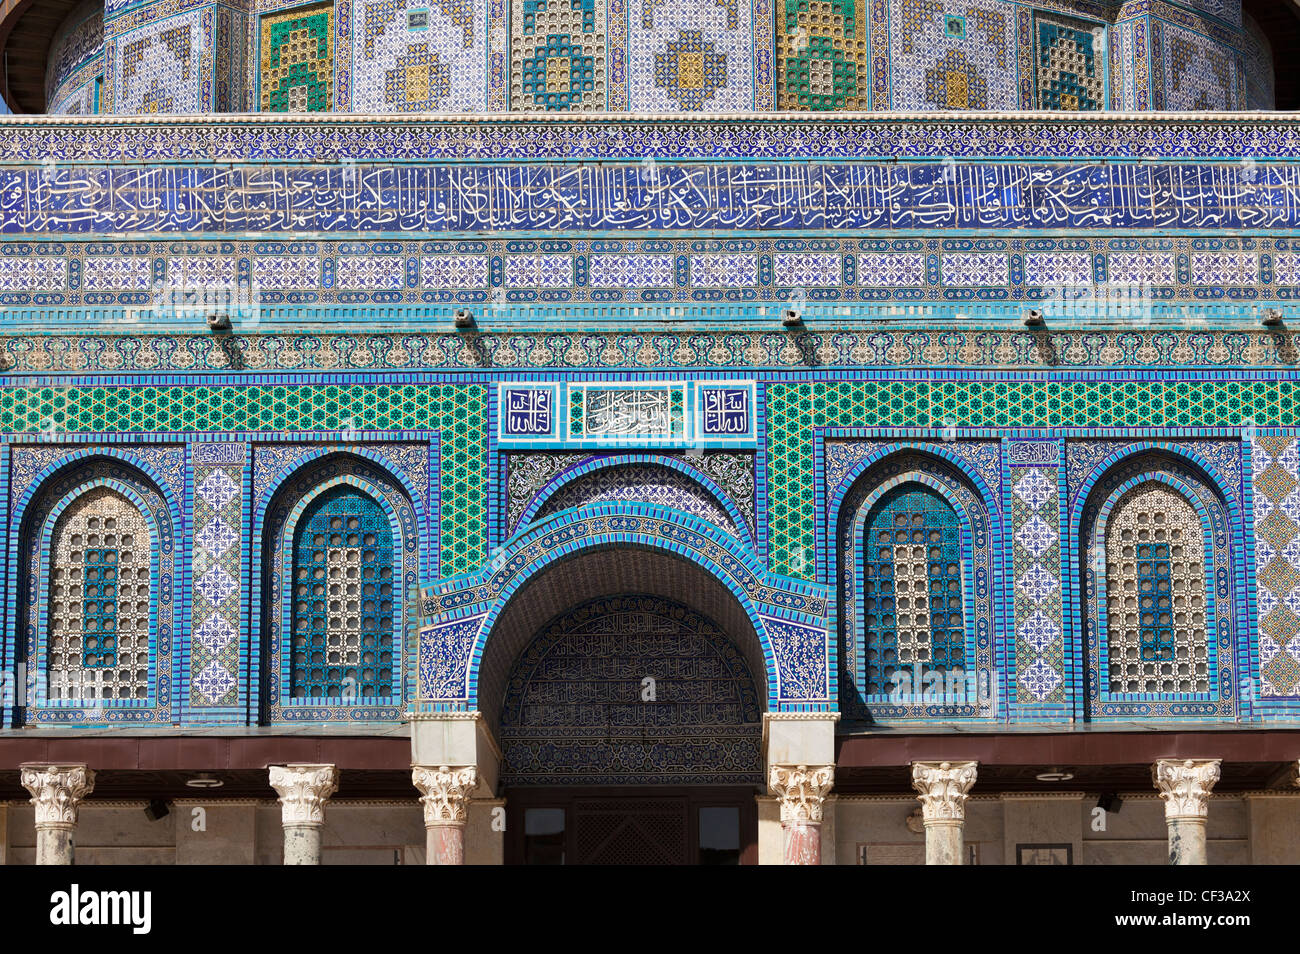 Israel, Jerusalem, Dome of the Rock mosque Stock Photo